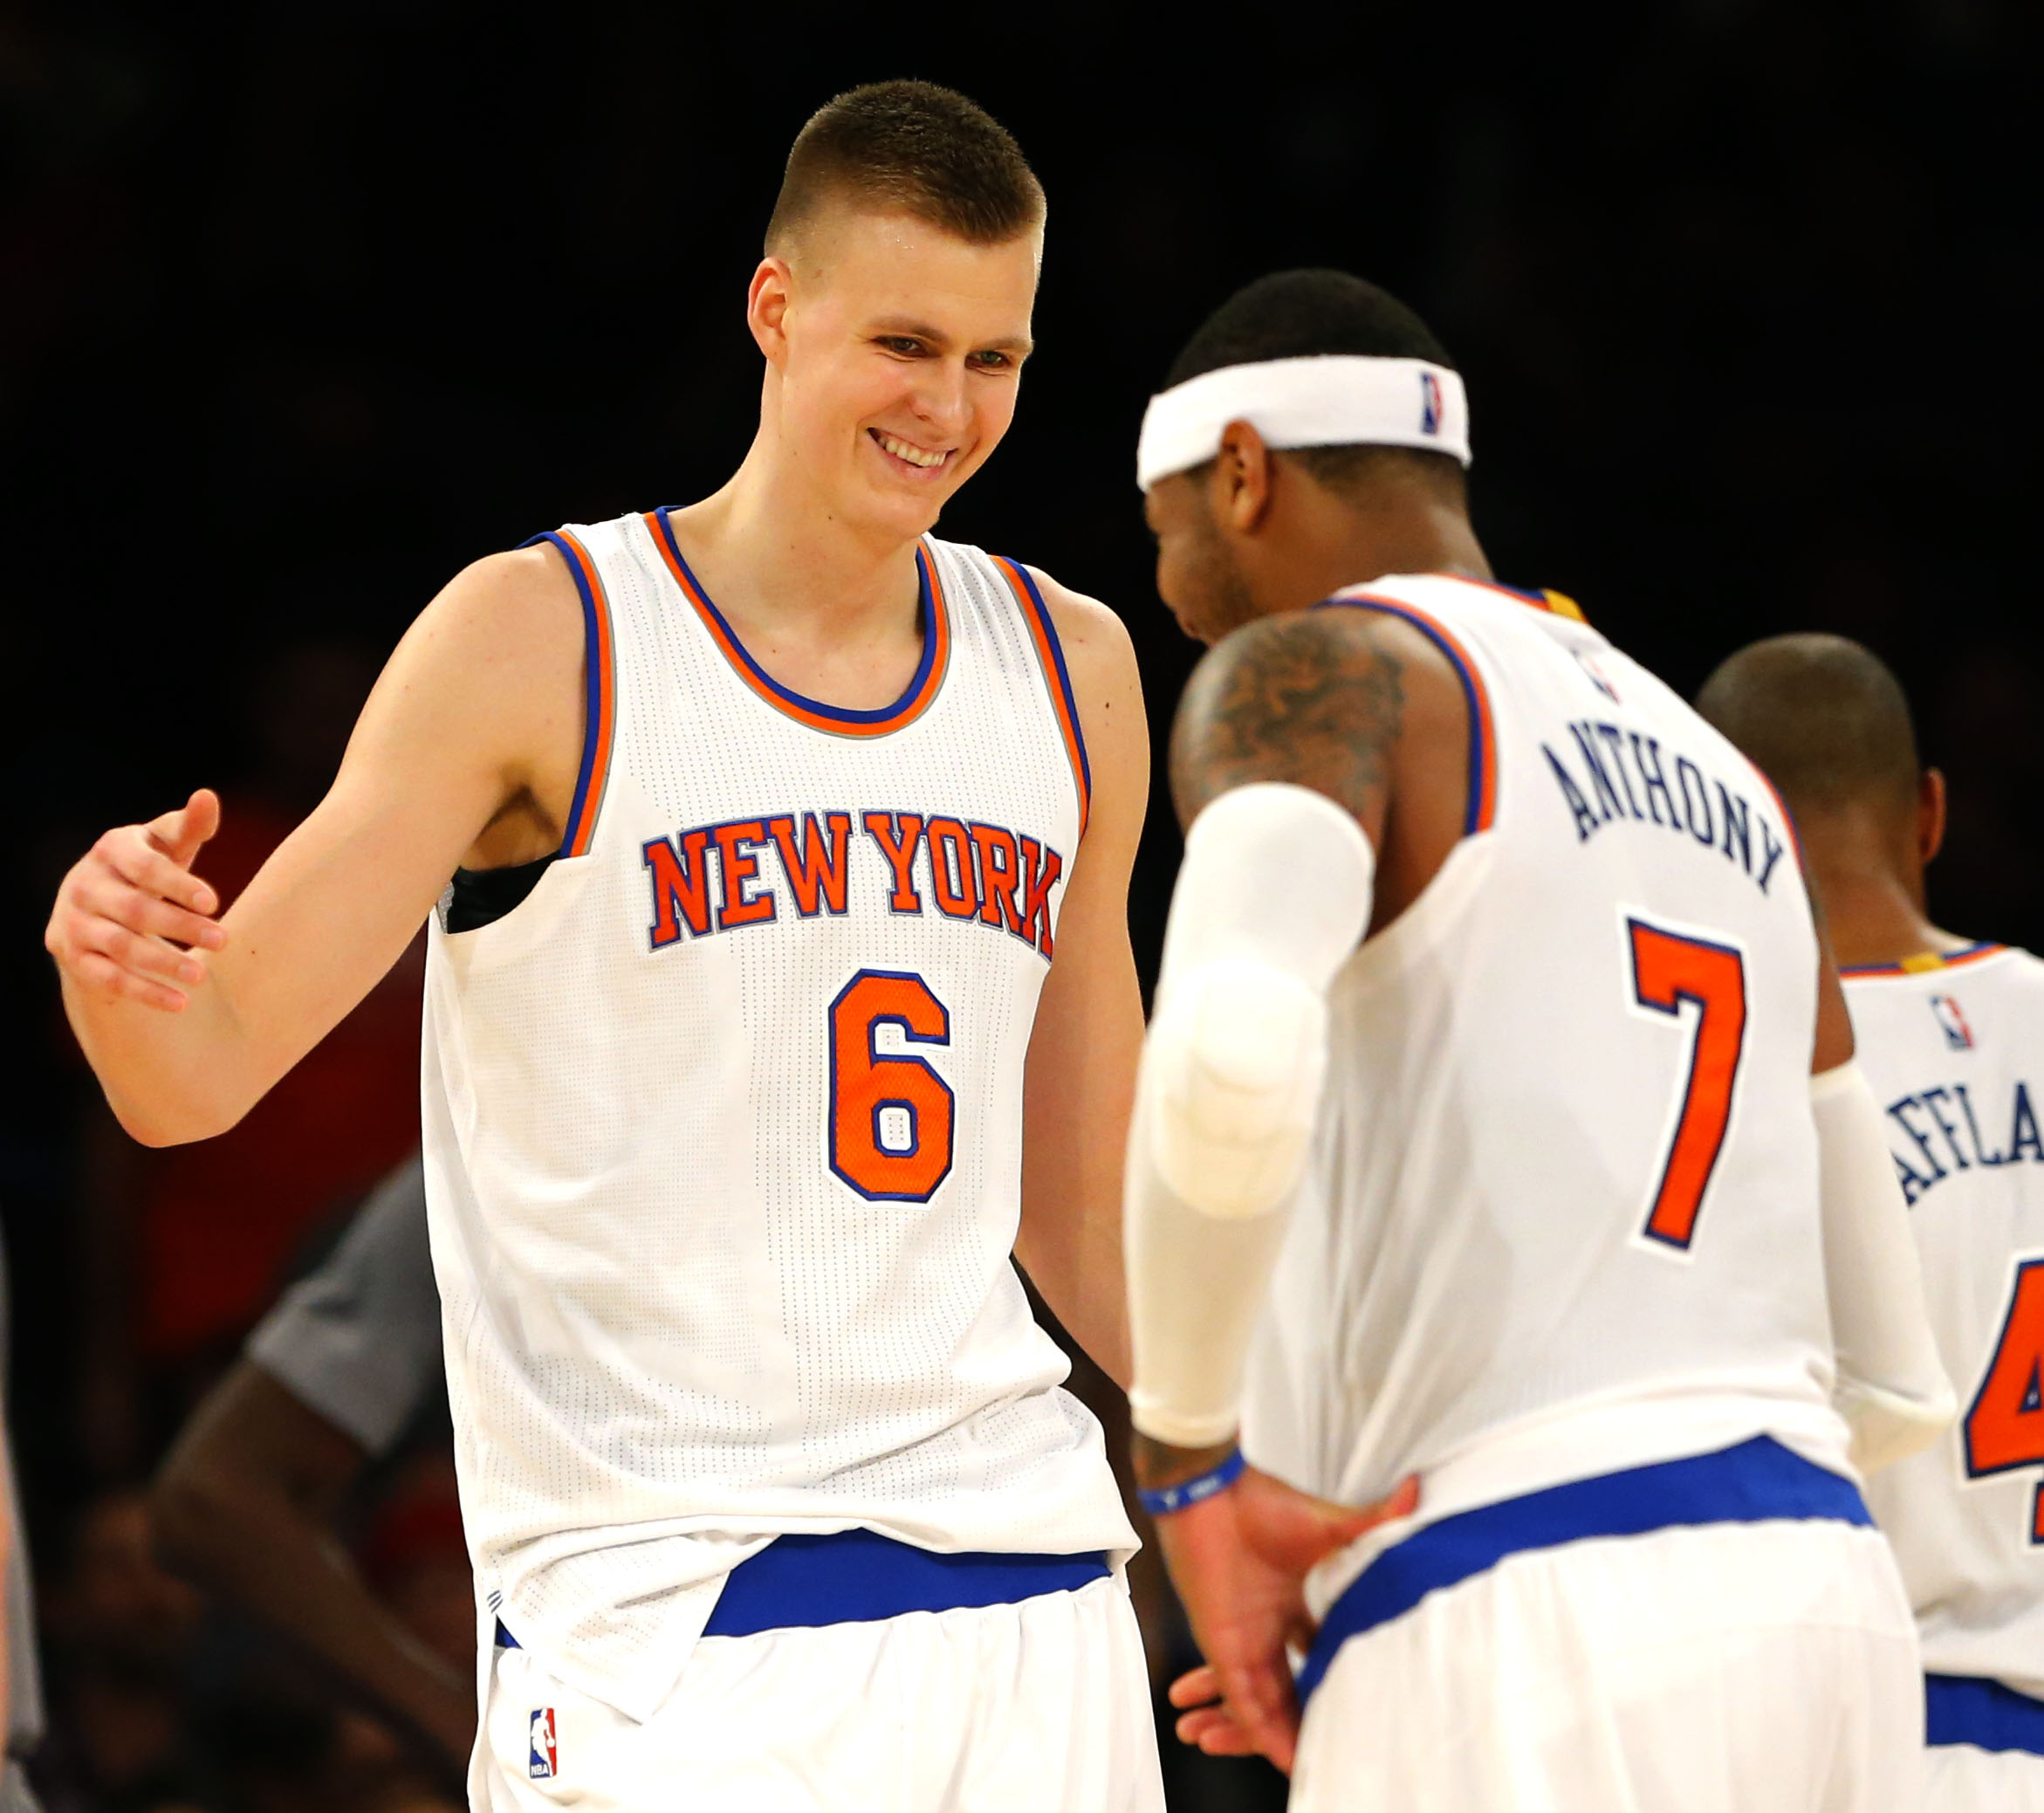 Dec 19, 2015; New York, NY, USA; New York Knicks forward Kristaps Porzingis (6) and New York Knicks forward Carmelo Anthony (7) react after a shot by Porzingis (6) during second half against the Chicago Bulls at Madison Square Garden. The New York Knicks defeated the Chicago Bulls 107-91. Mandatory Credit: Noah K. Murray-USA TODAY Sports